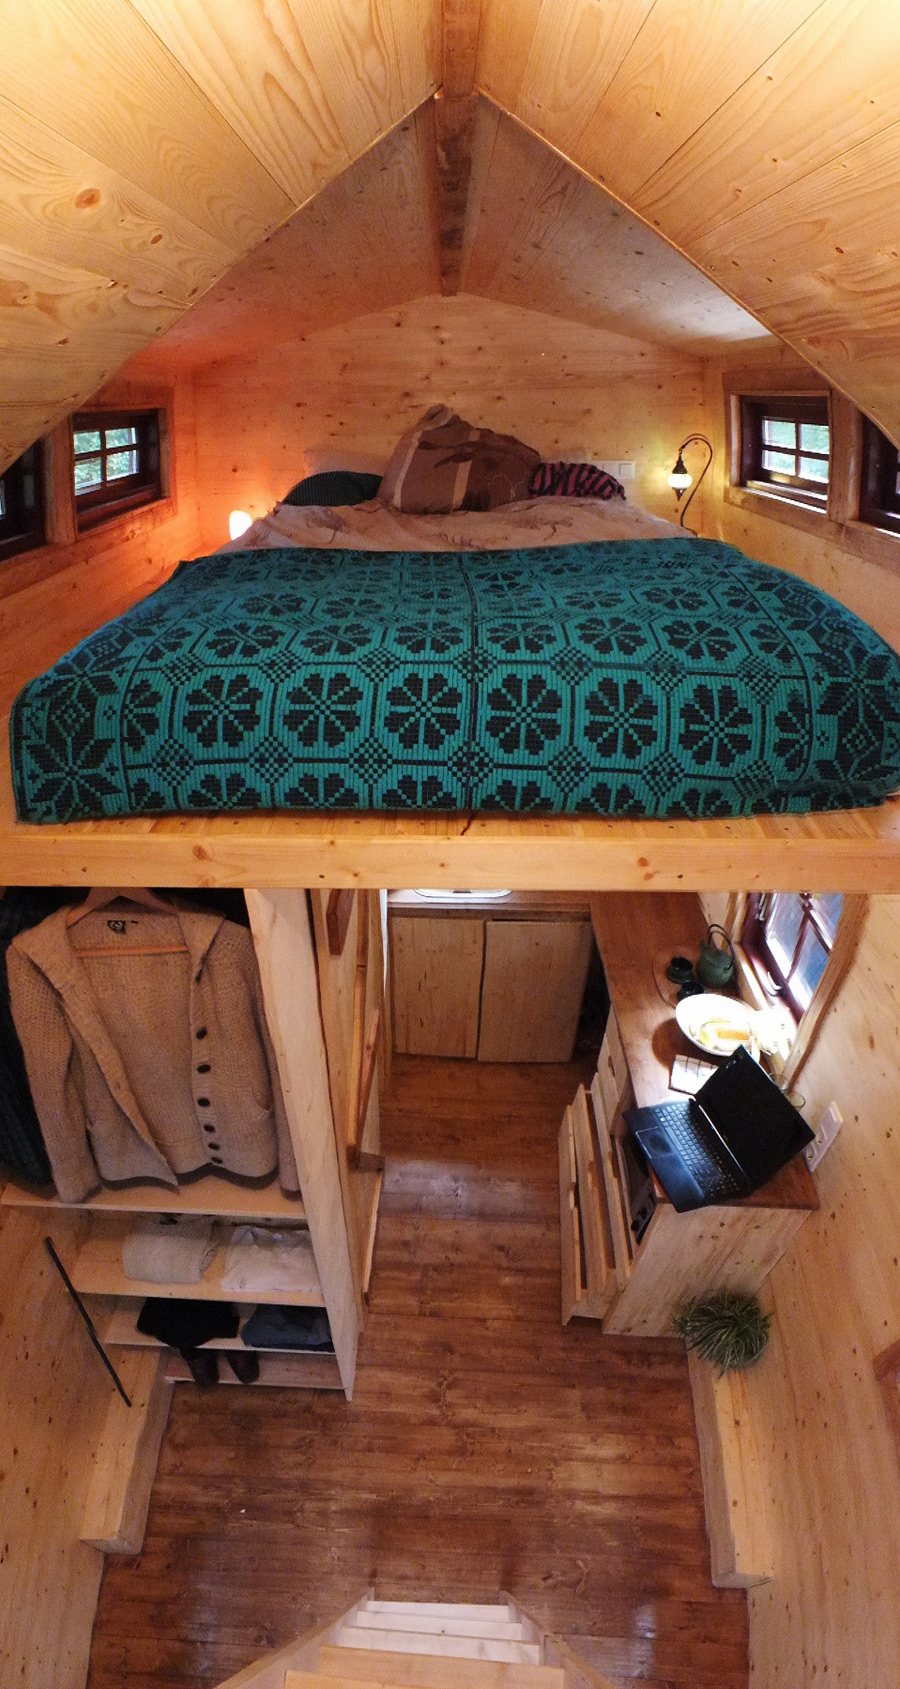 christiane-catalins-tiny house-17